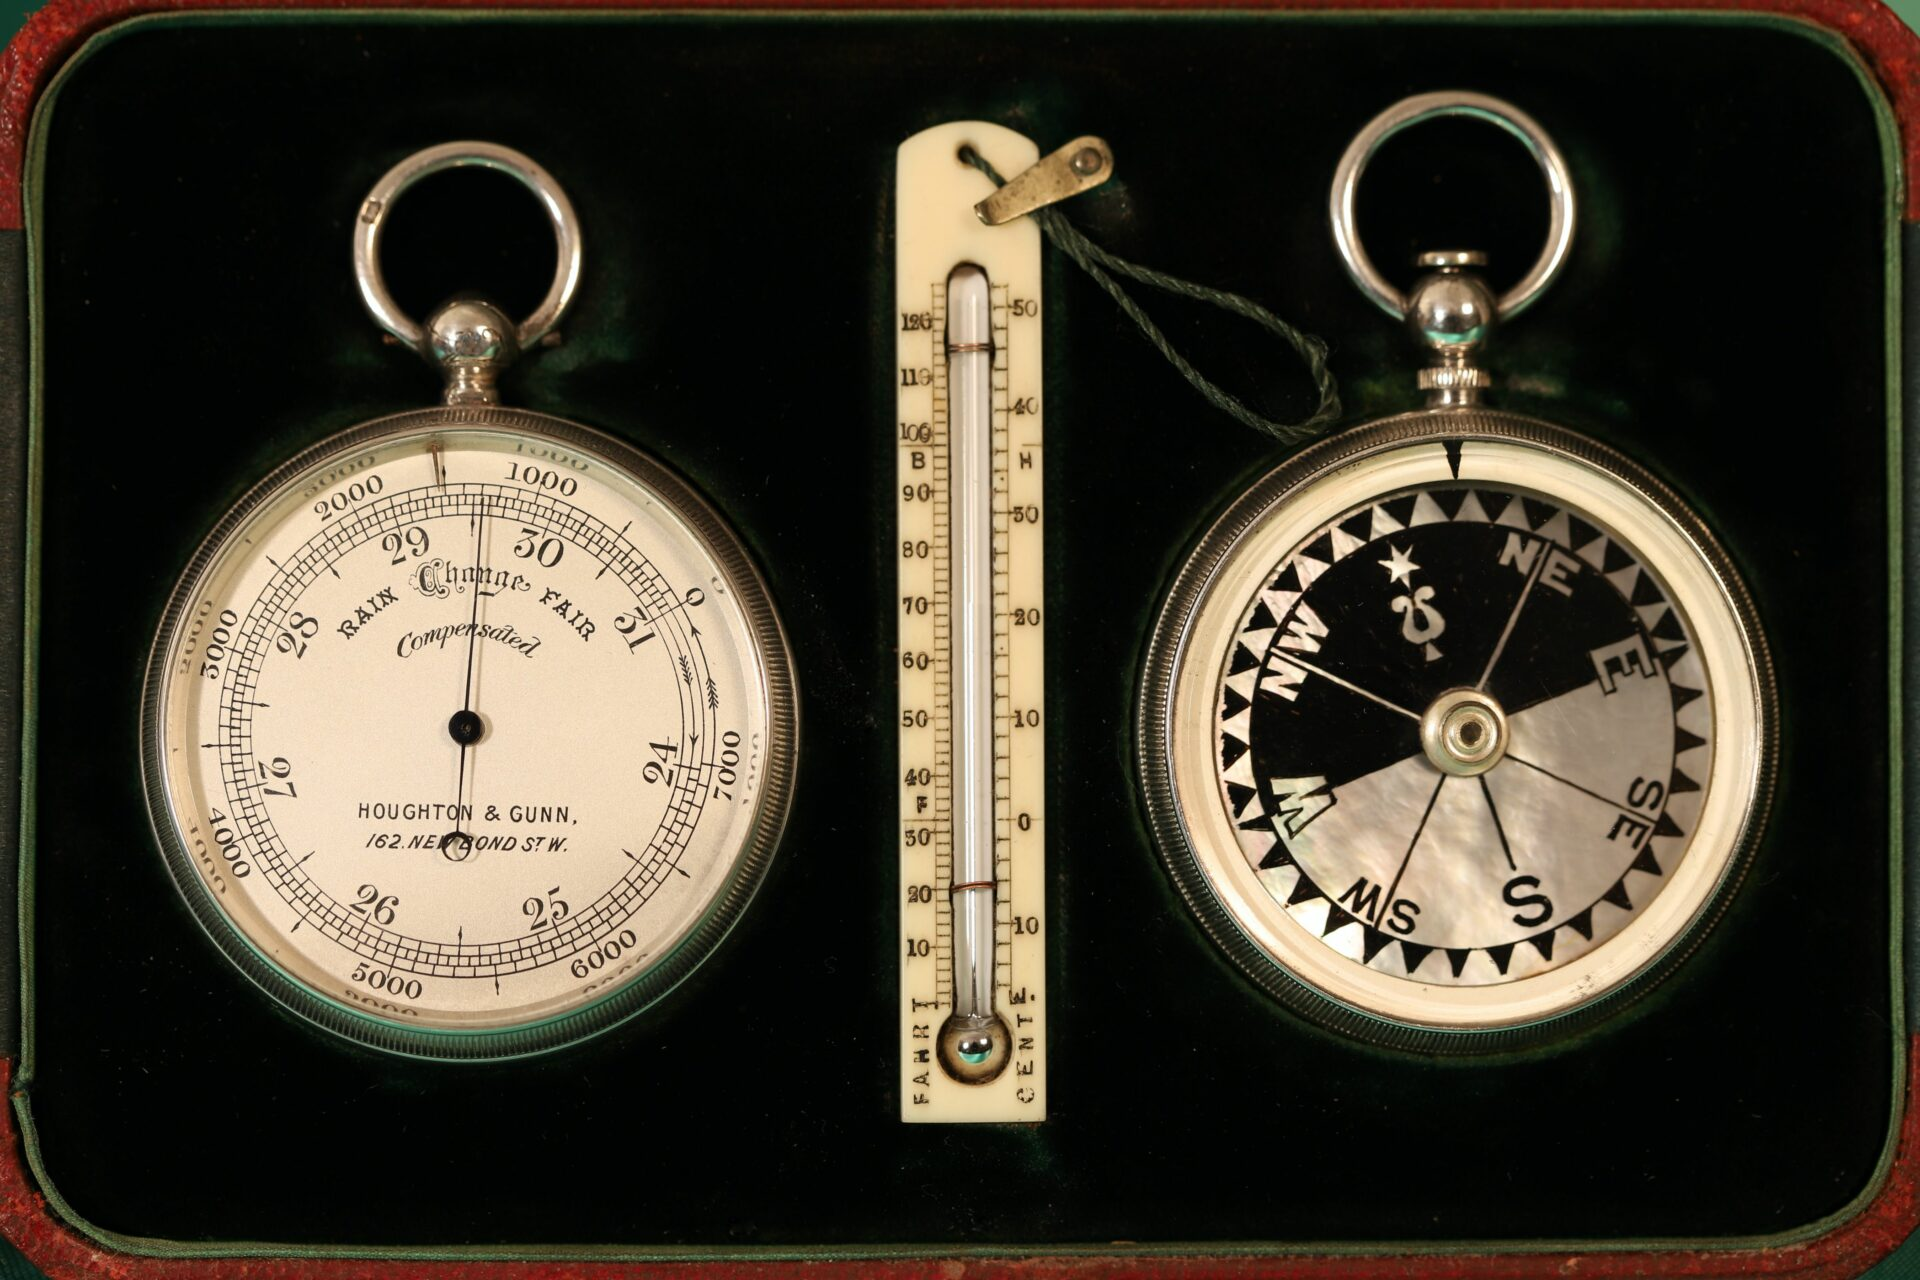 Image of the inside of Houghton & Gunn Silver Travel Compendium c1895 showing pocket barometer, thermometer and compass